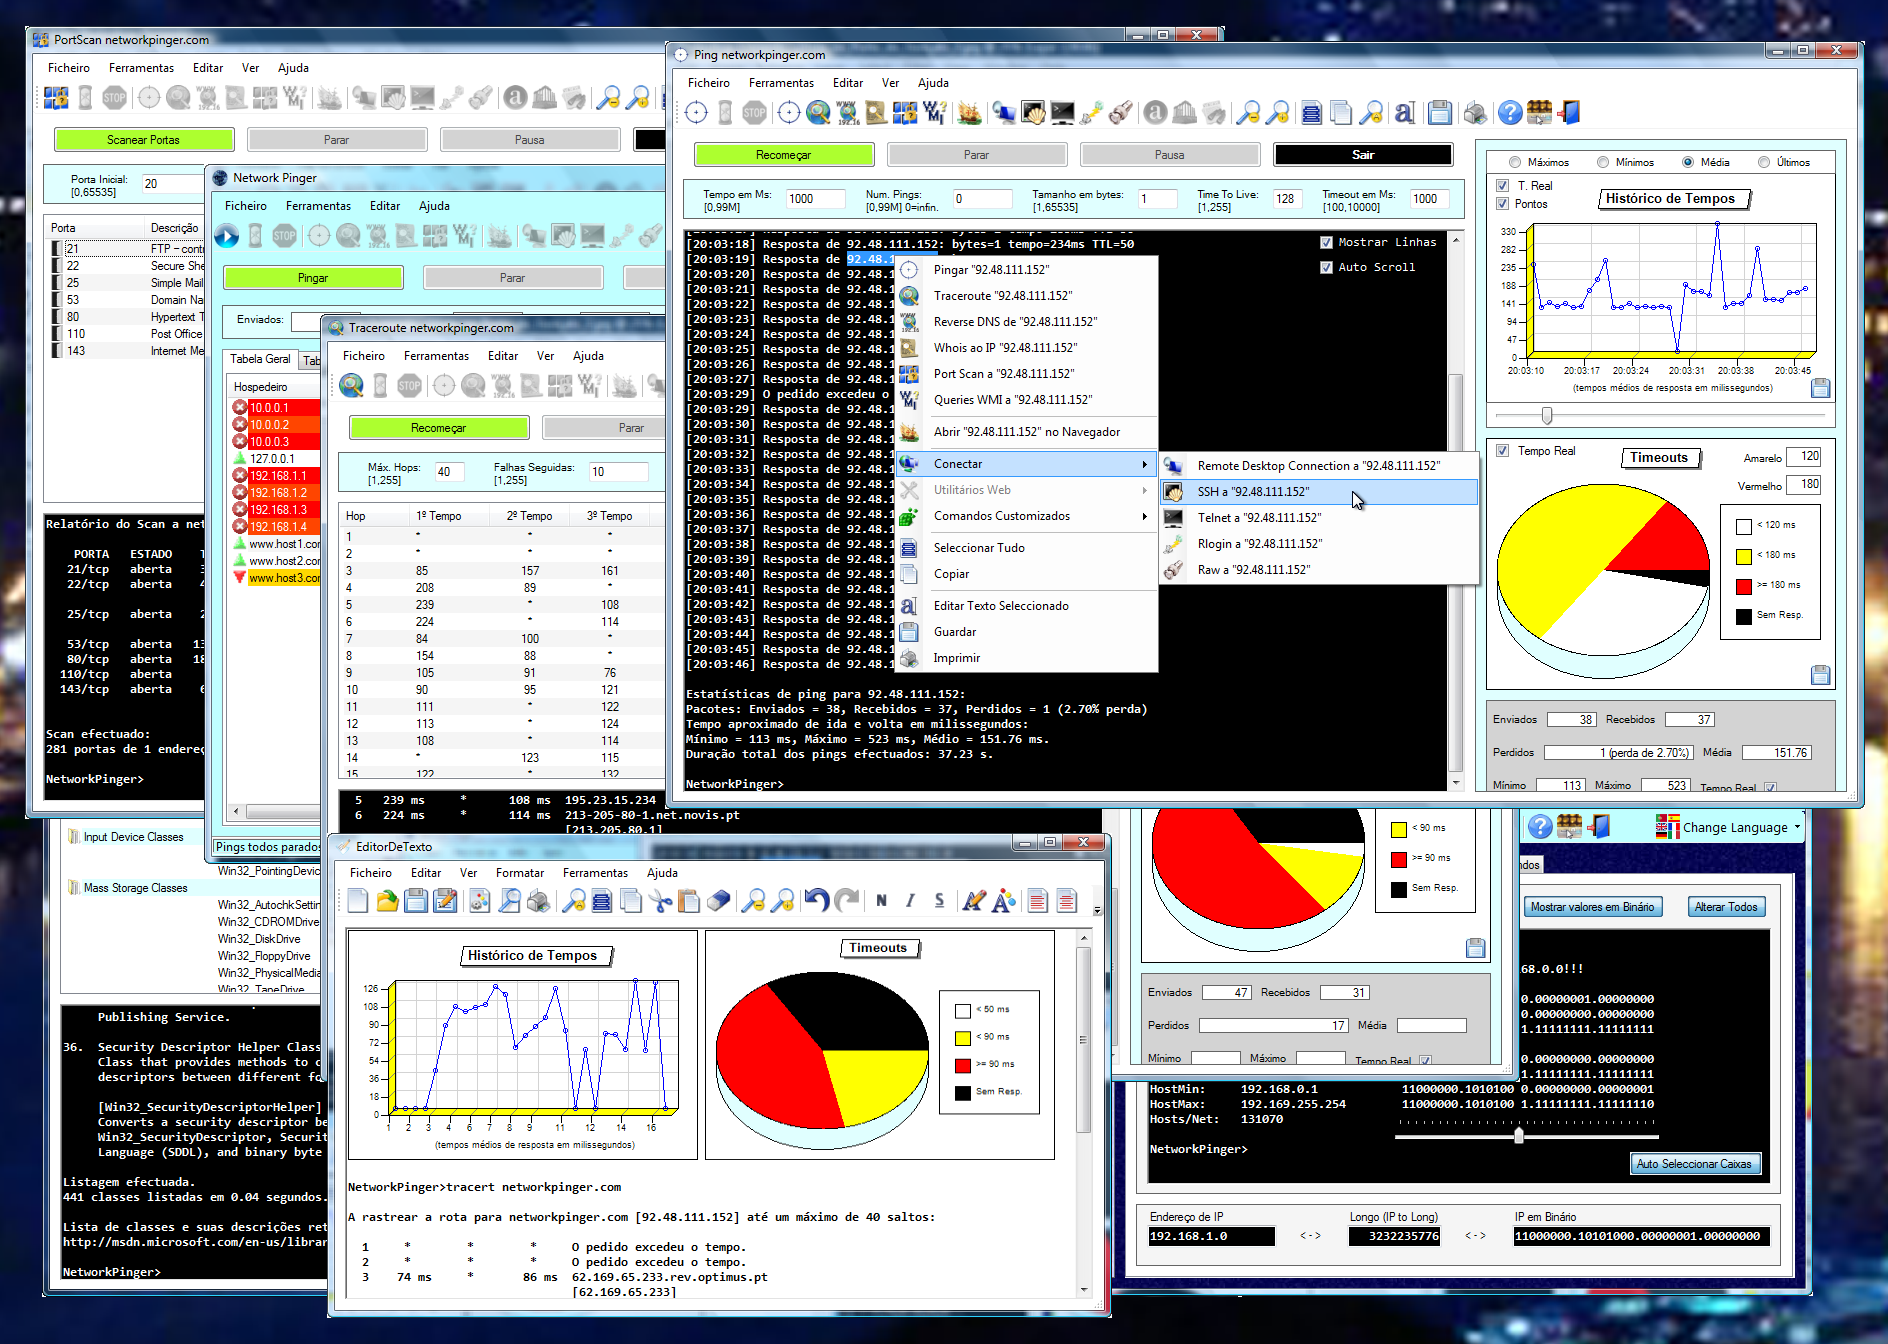 Network Pinger Mass Pinger And Network Analysis Tool Freeware - Graphical network mapping tool